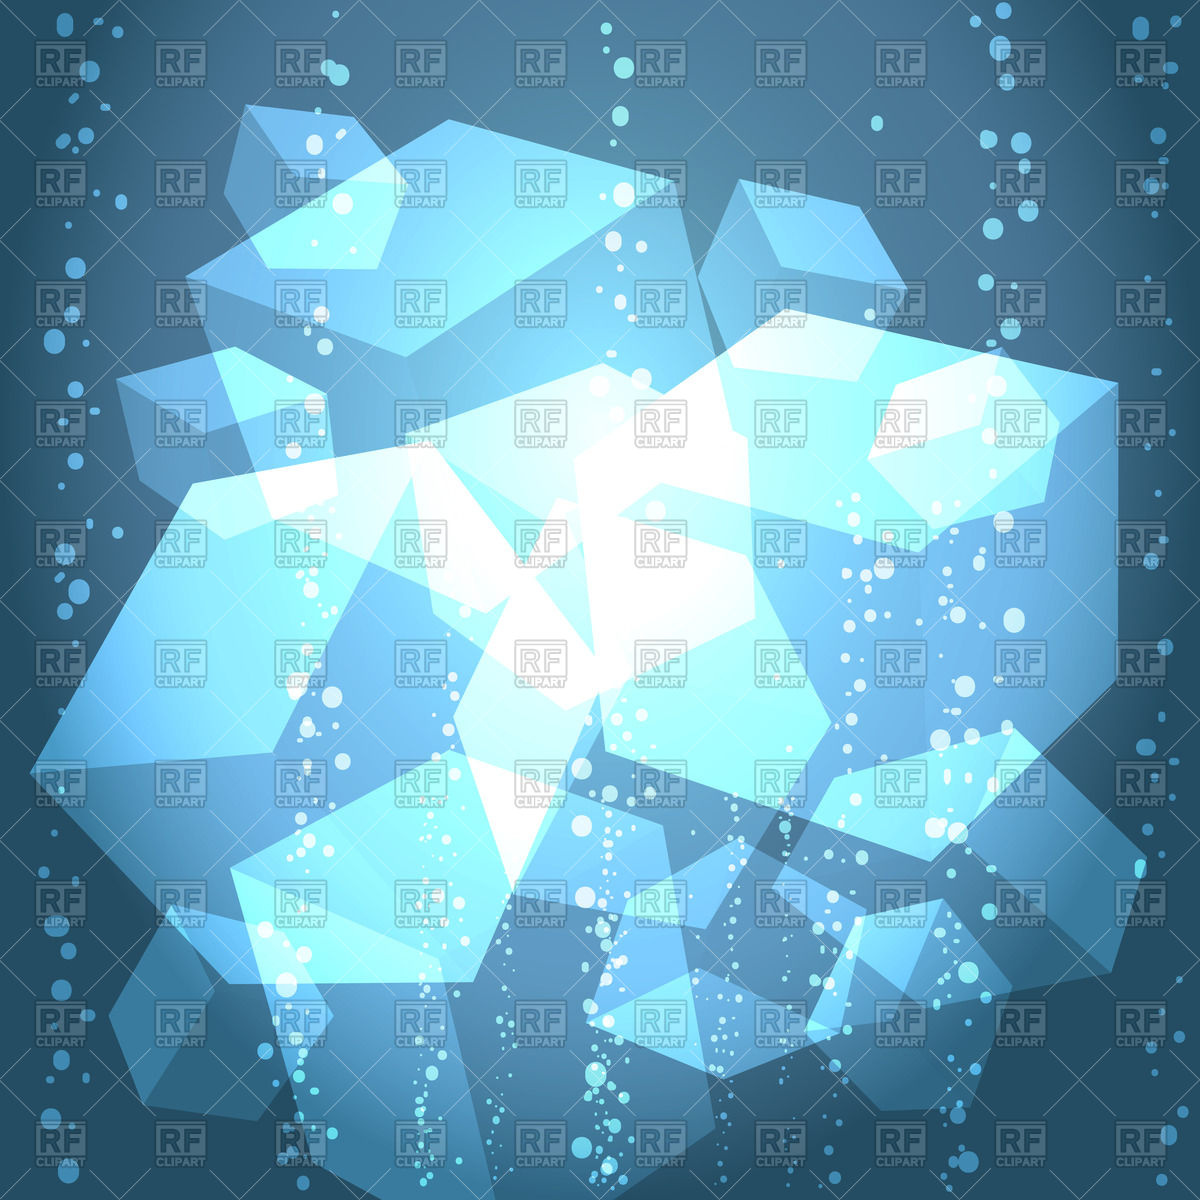 Ice cubes in the water with bubbles Vector Image #44206.